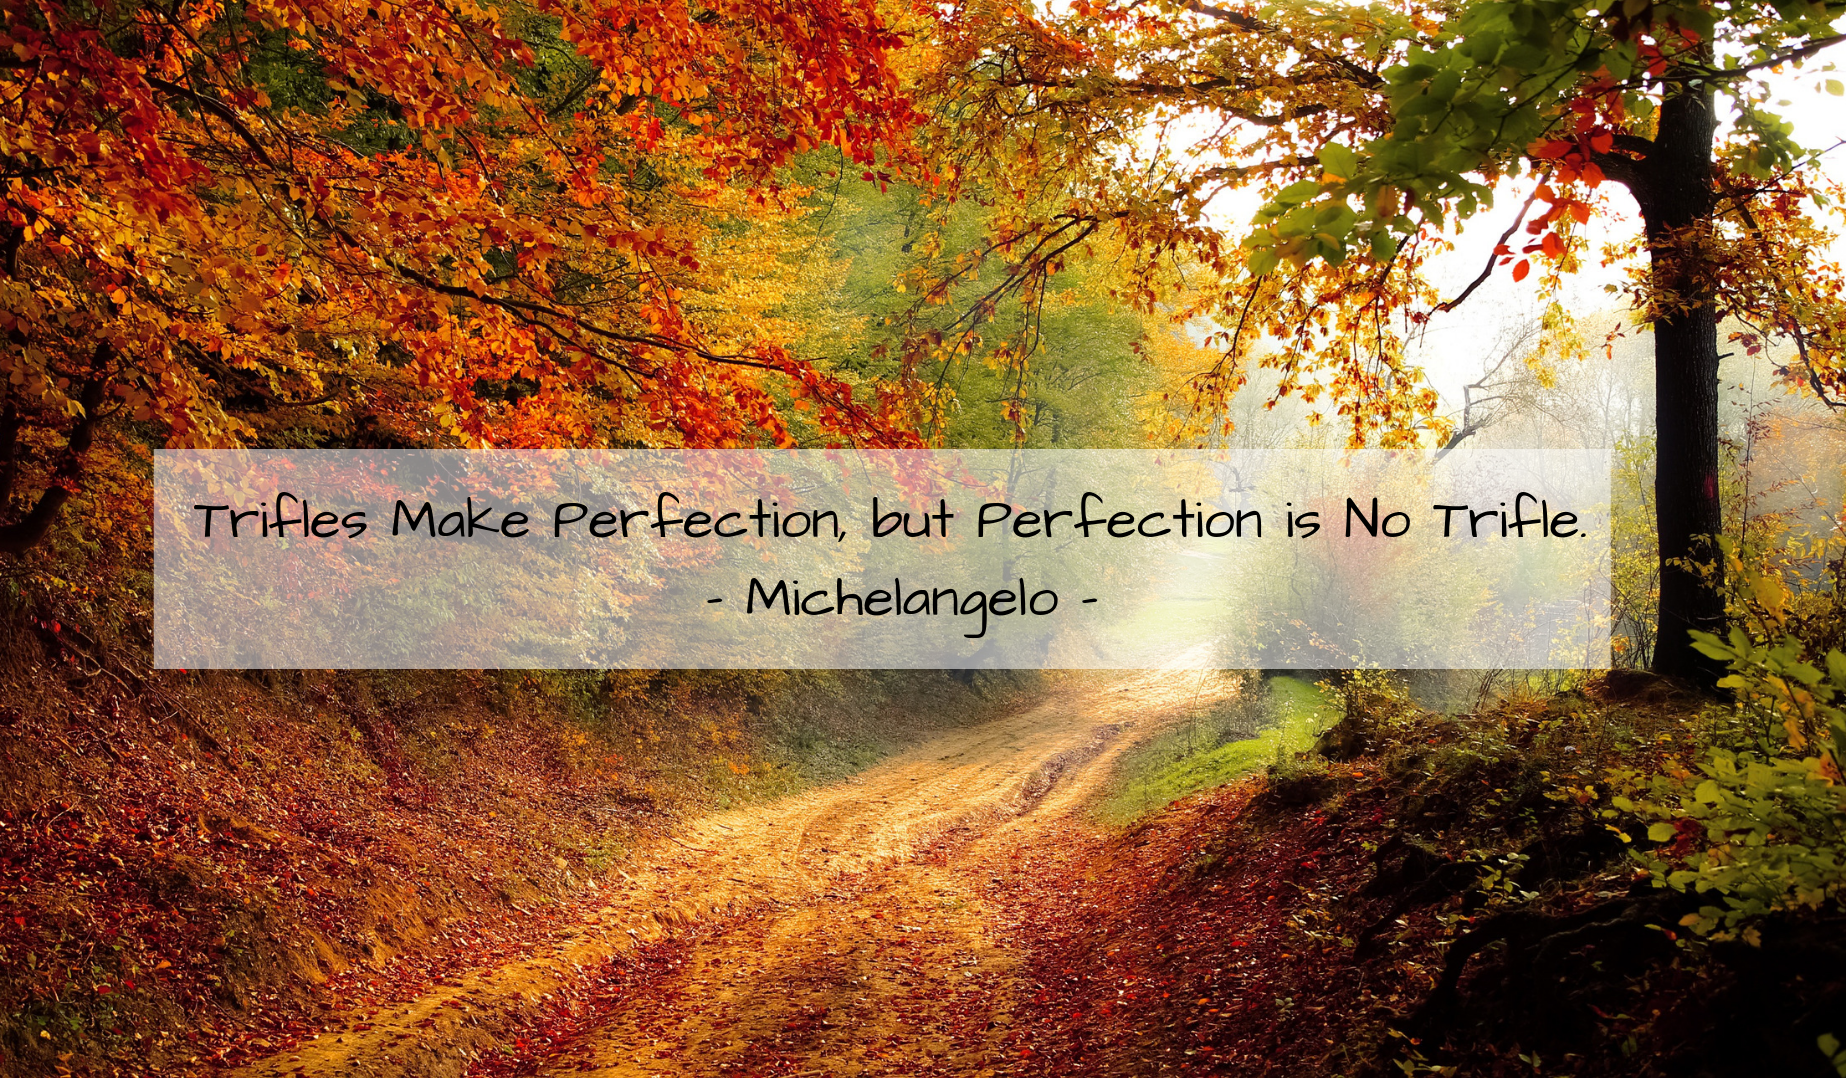 Trifles Make Perfection, but Perfection is no Trifle. - Michelangelo - (9).png